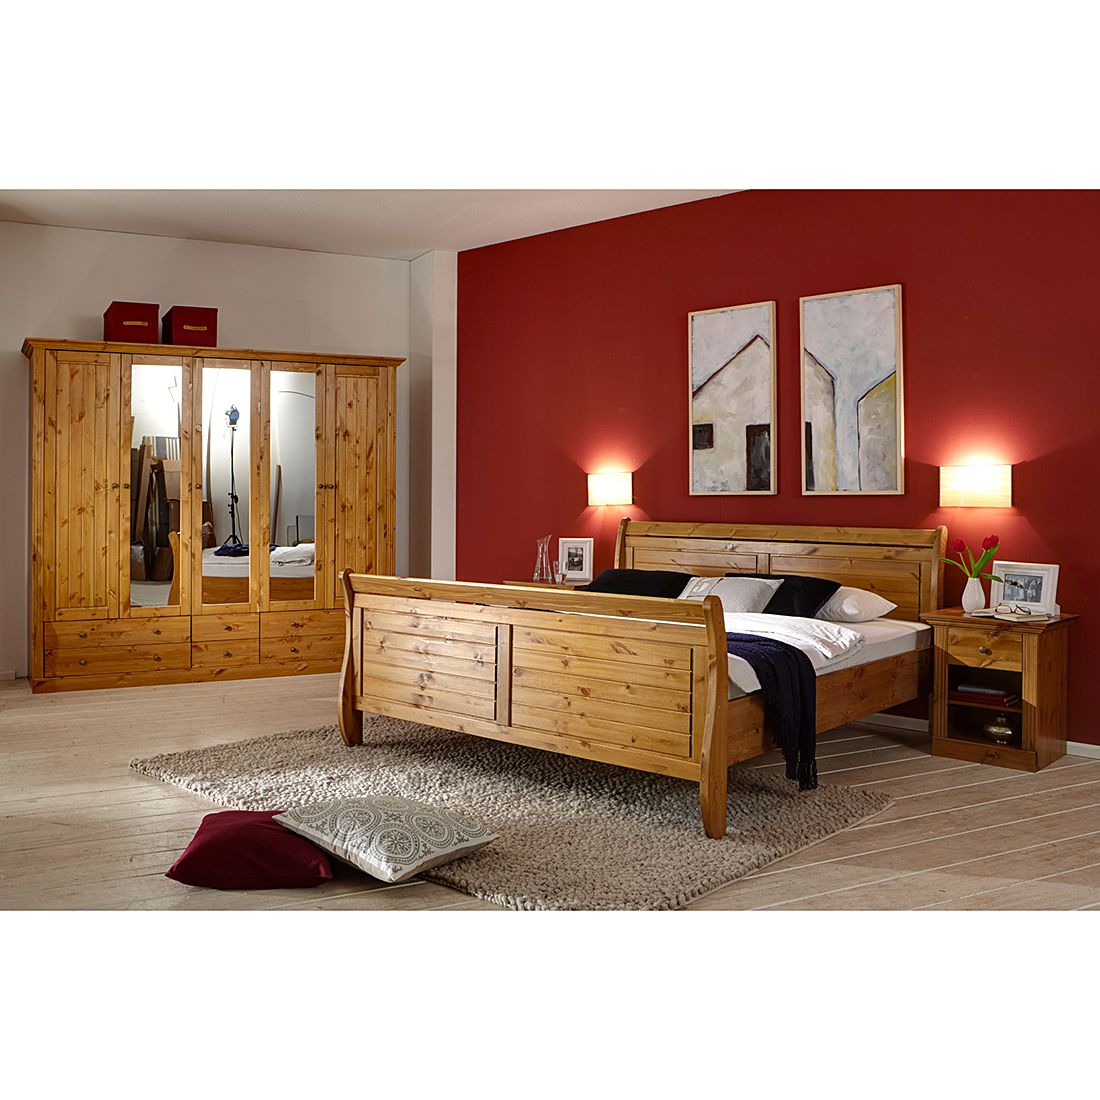 schlafzimmer set lyngby 4 teilig kiefer massiv provence steens g nstig online kaufen. Black Bedroom Furniture Sets. Home Design Ideas